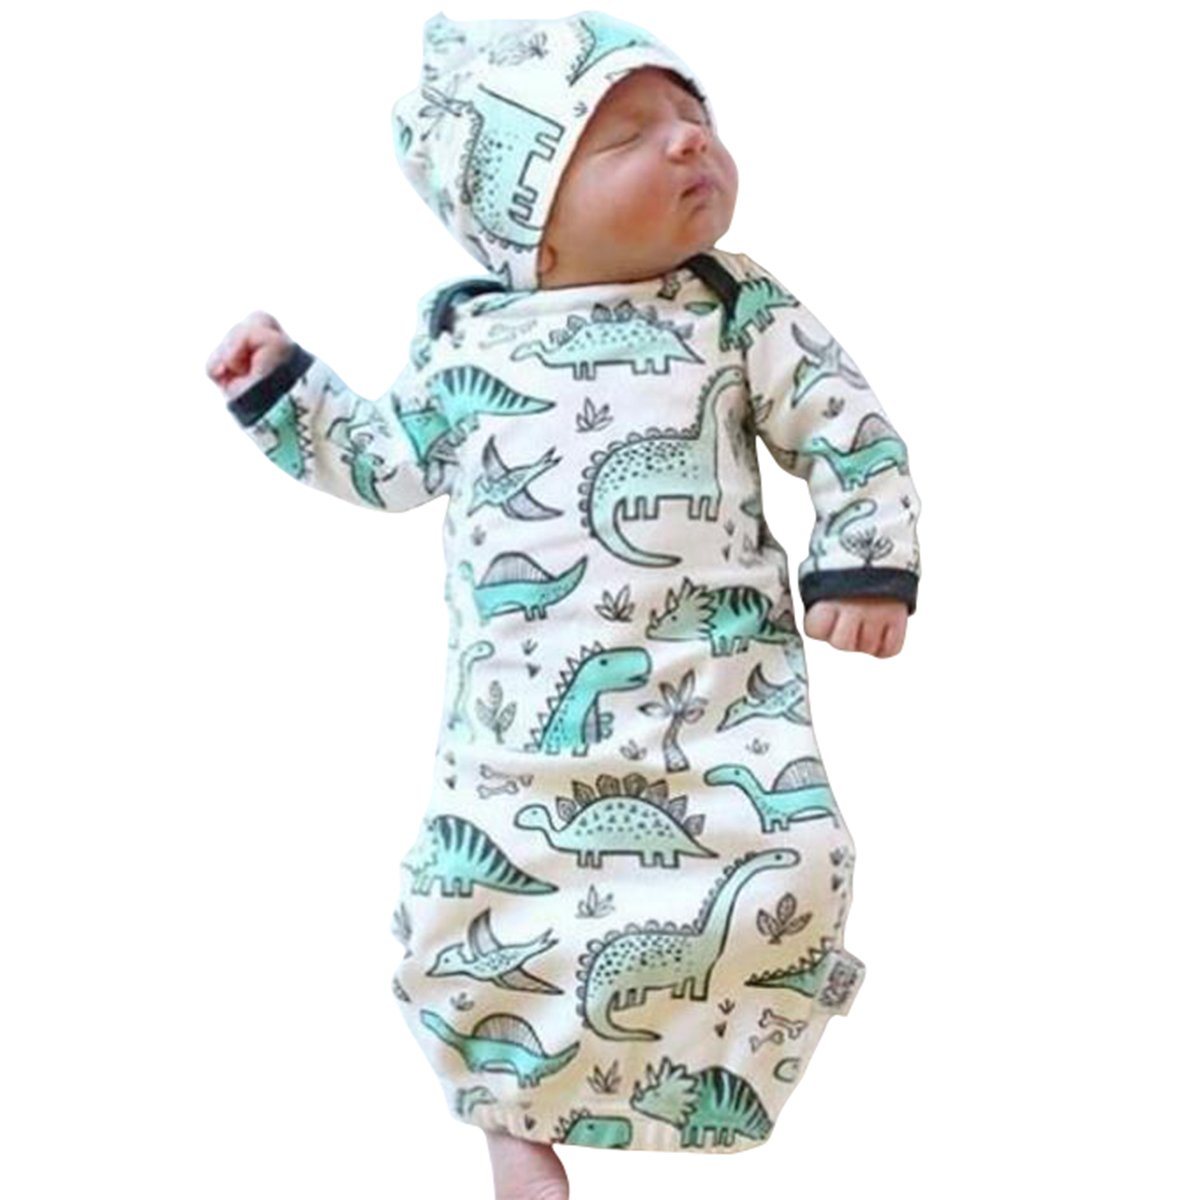 COLOOM Infant Baby Cartoon Dinosaur Pajamas Newborn Sleeper Gown Swaddle Hats 2Pcs Outfits